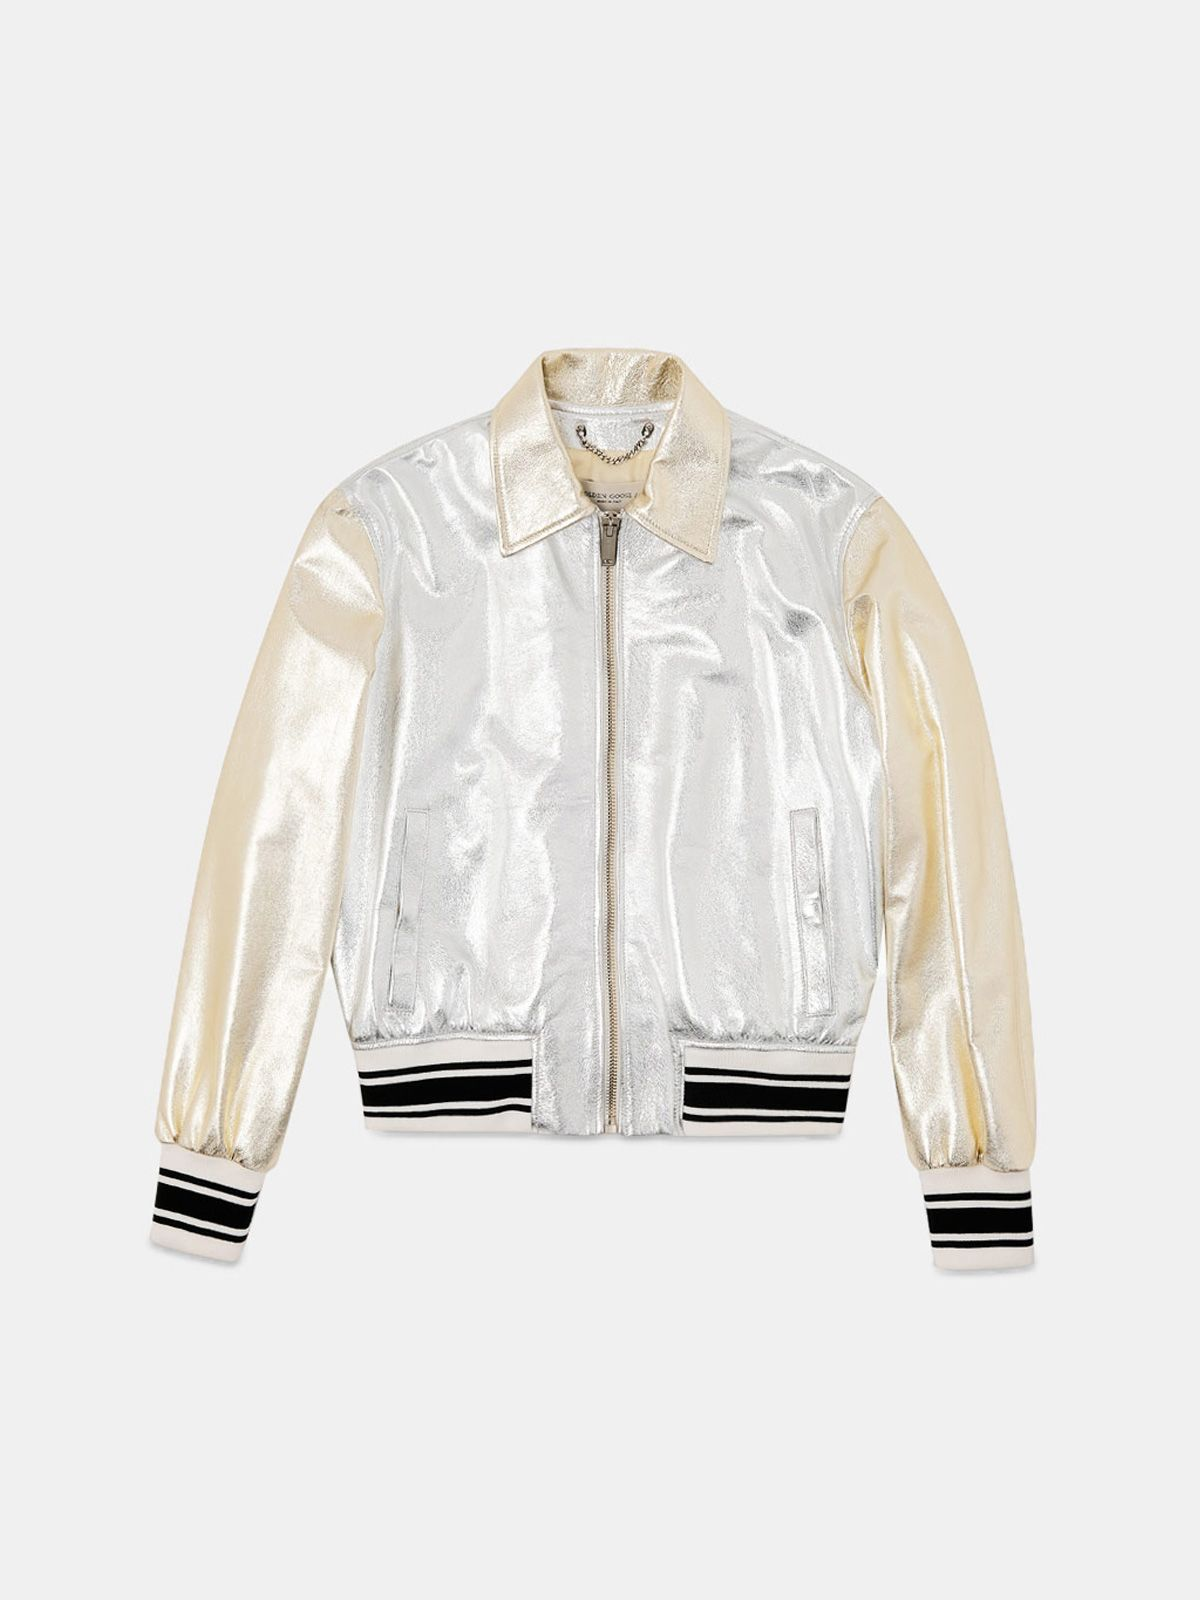 Angelica bomber jacket in gold and silver leather